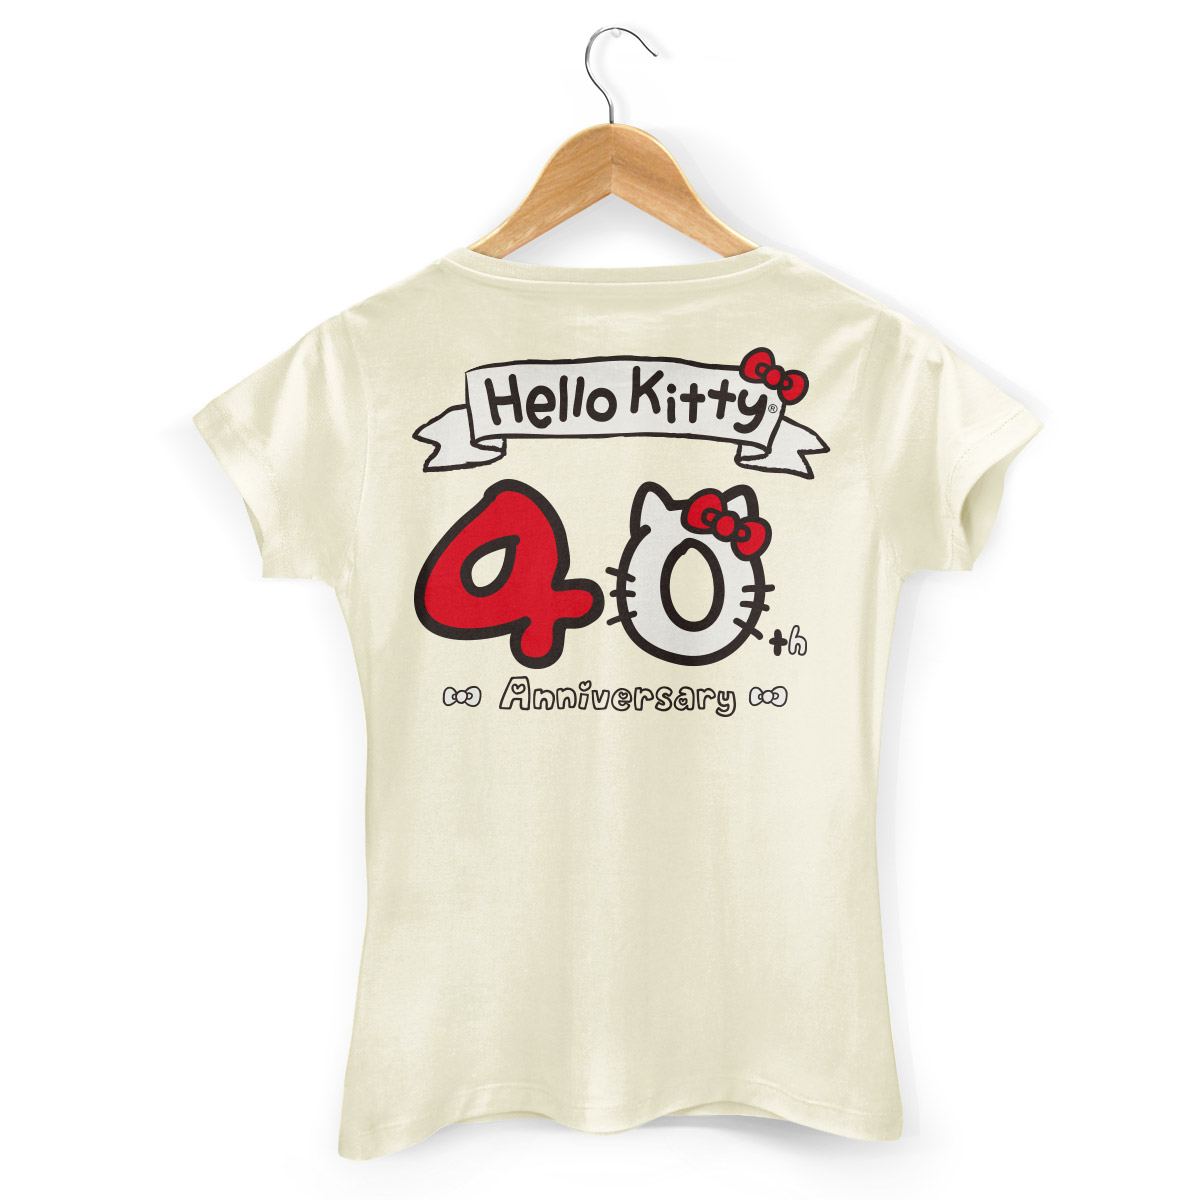 Camiseta Hello Kitty 40th Anniversary